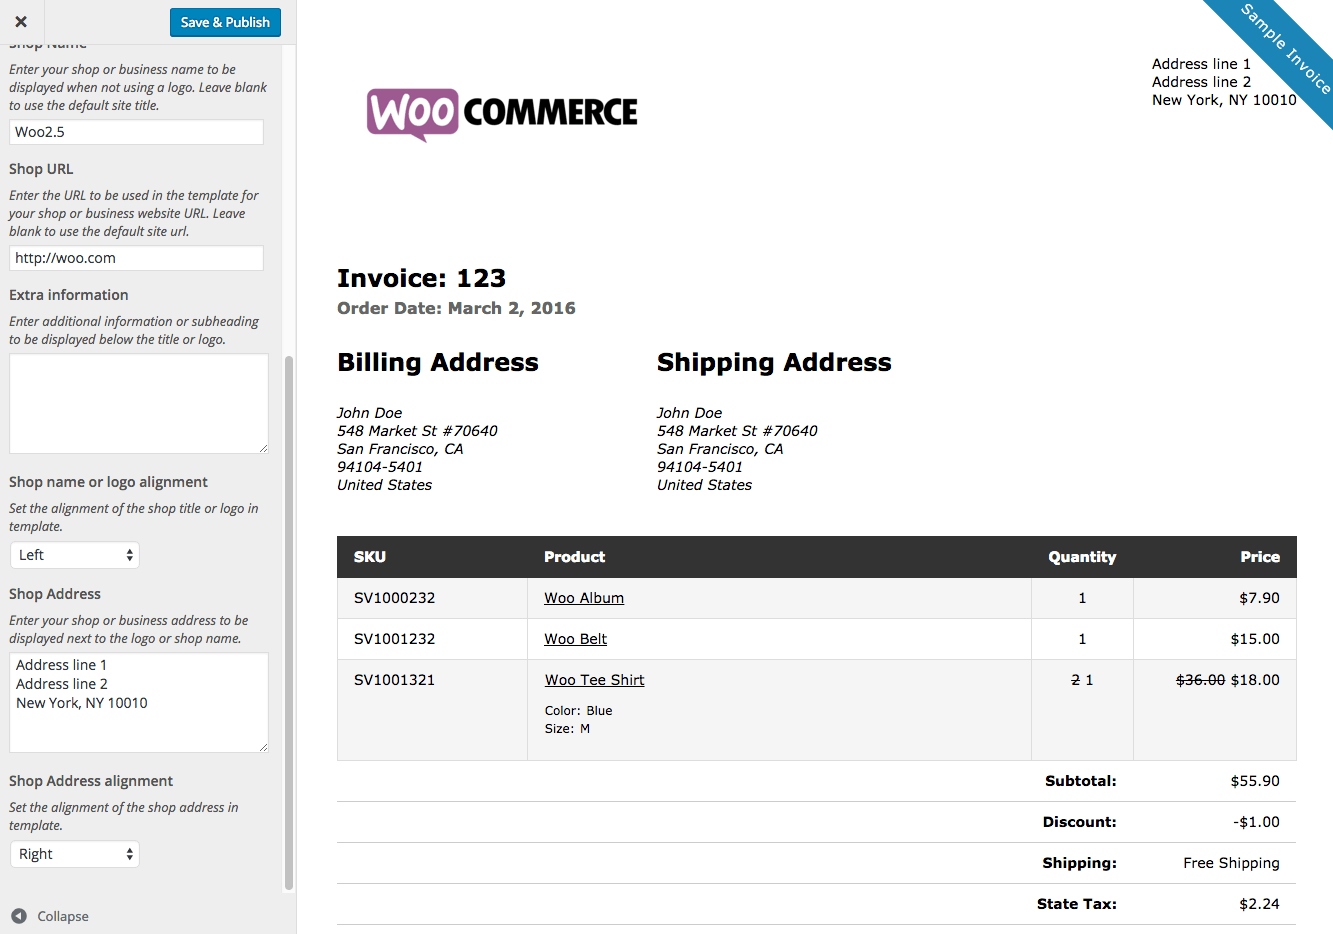 Soulfulpowerus  Surprising Woocommerce Print Invoices Amp Packing Lists  Woocommerce Docs With Great Woocommerce Print Invoices  Packing Lists Customizer With Alluring Gluten Free Receipts Also Receipt Formats In Addition Received Receipt Format And Sample Receipt Book As Well As Receipt Letter For Money Received Additionally Petty Cash Receipt Sample From Docswoocommercecom With Soulfulpowerus  Great Woocommerce Print Invoices Amp Packing Lists  Woocommerce Docs With Alluring Woocommerce Print Invoices  Packing Lists Customizer And Surprising Gluten Free Receipts Also Receipt Formats In Addition Received Receipt Format From Docswoocommercecom